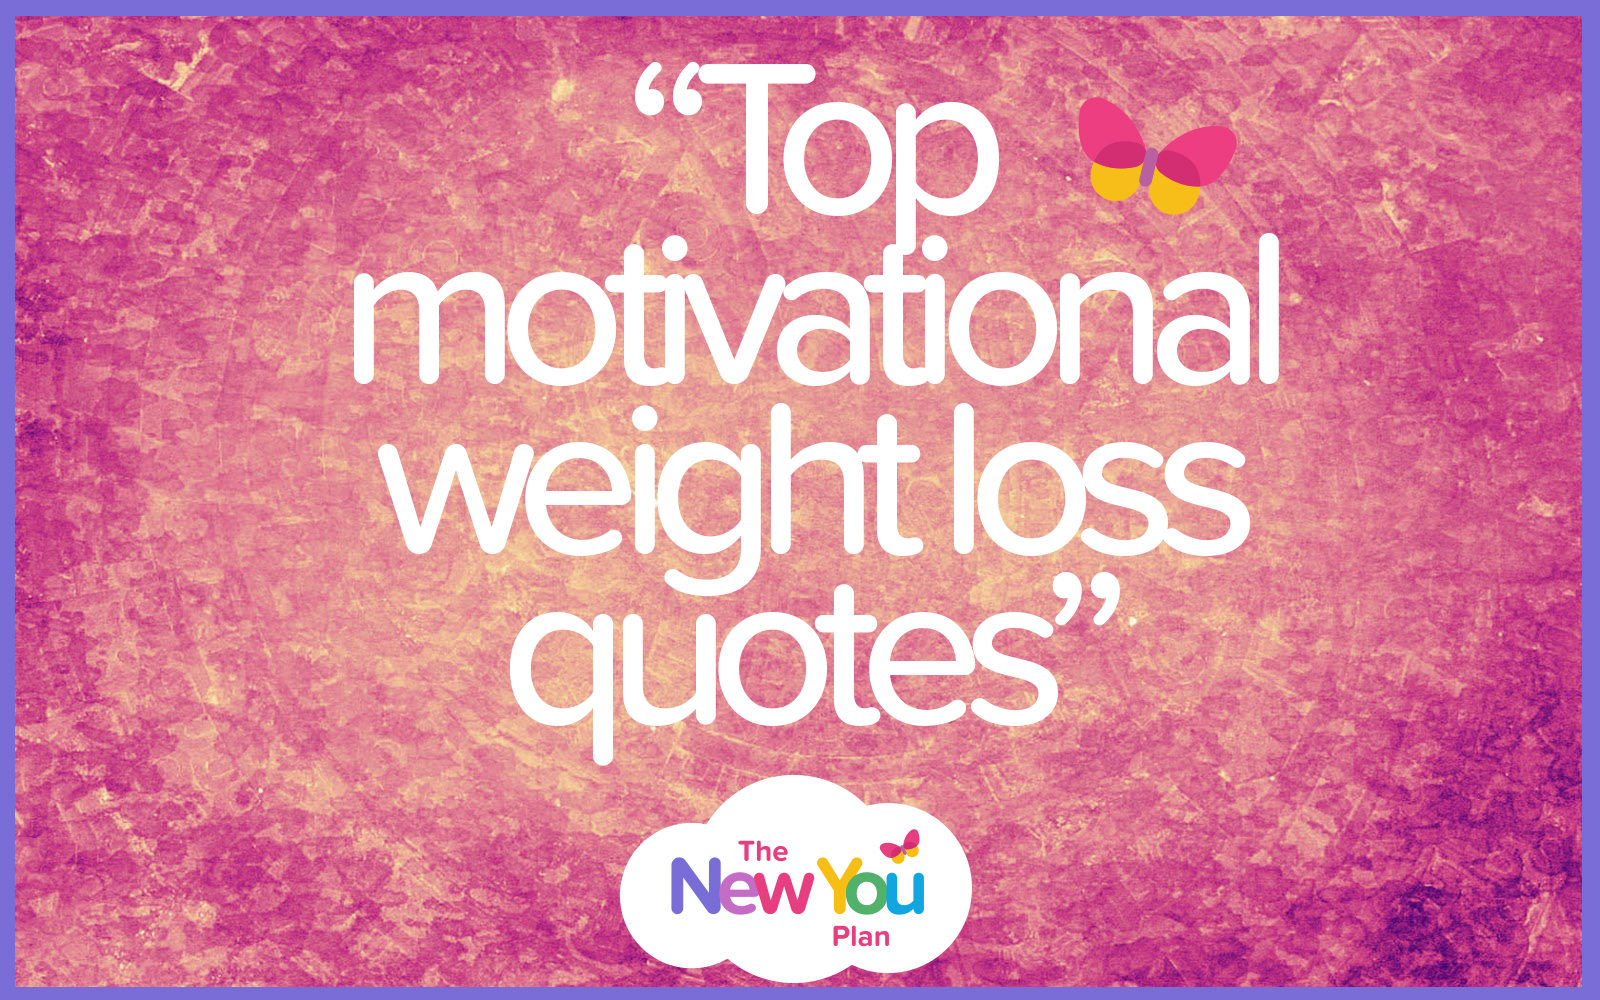 Top Motivational Weight Loss Quotes - The New You Plan